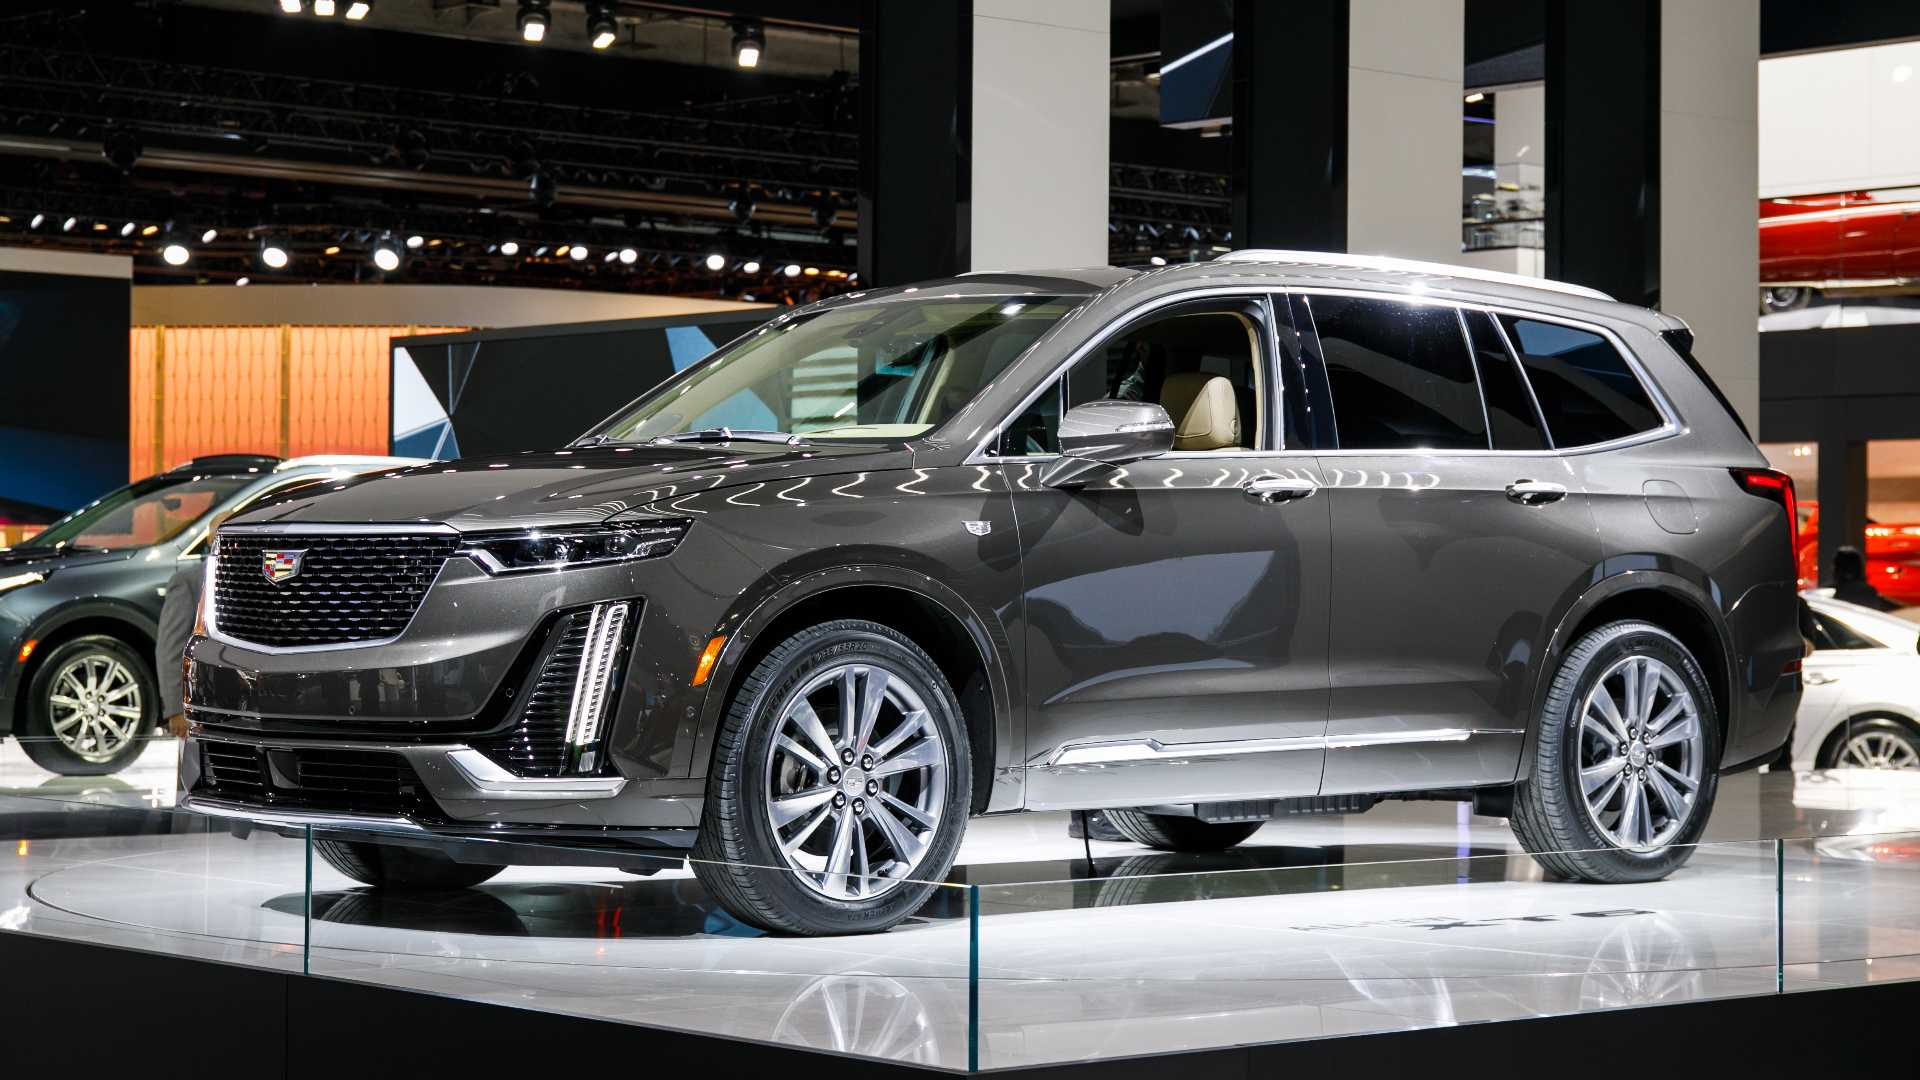 49 All New 2020 Cadillac Xt6 Msrp Concept